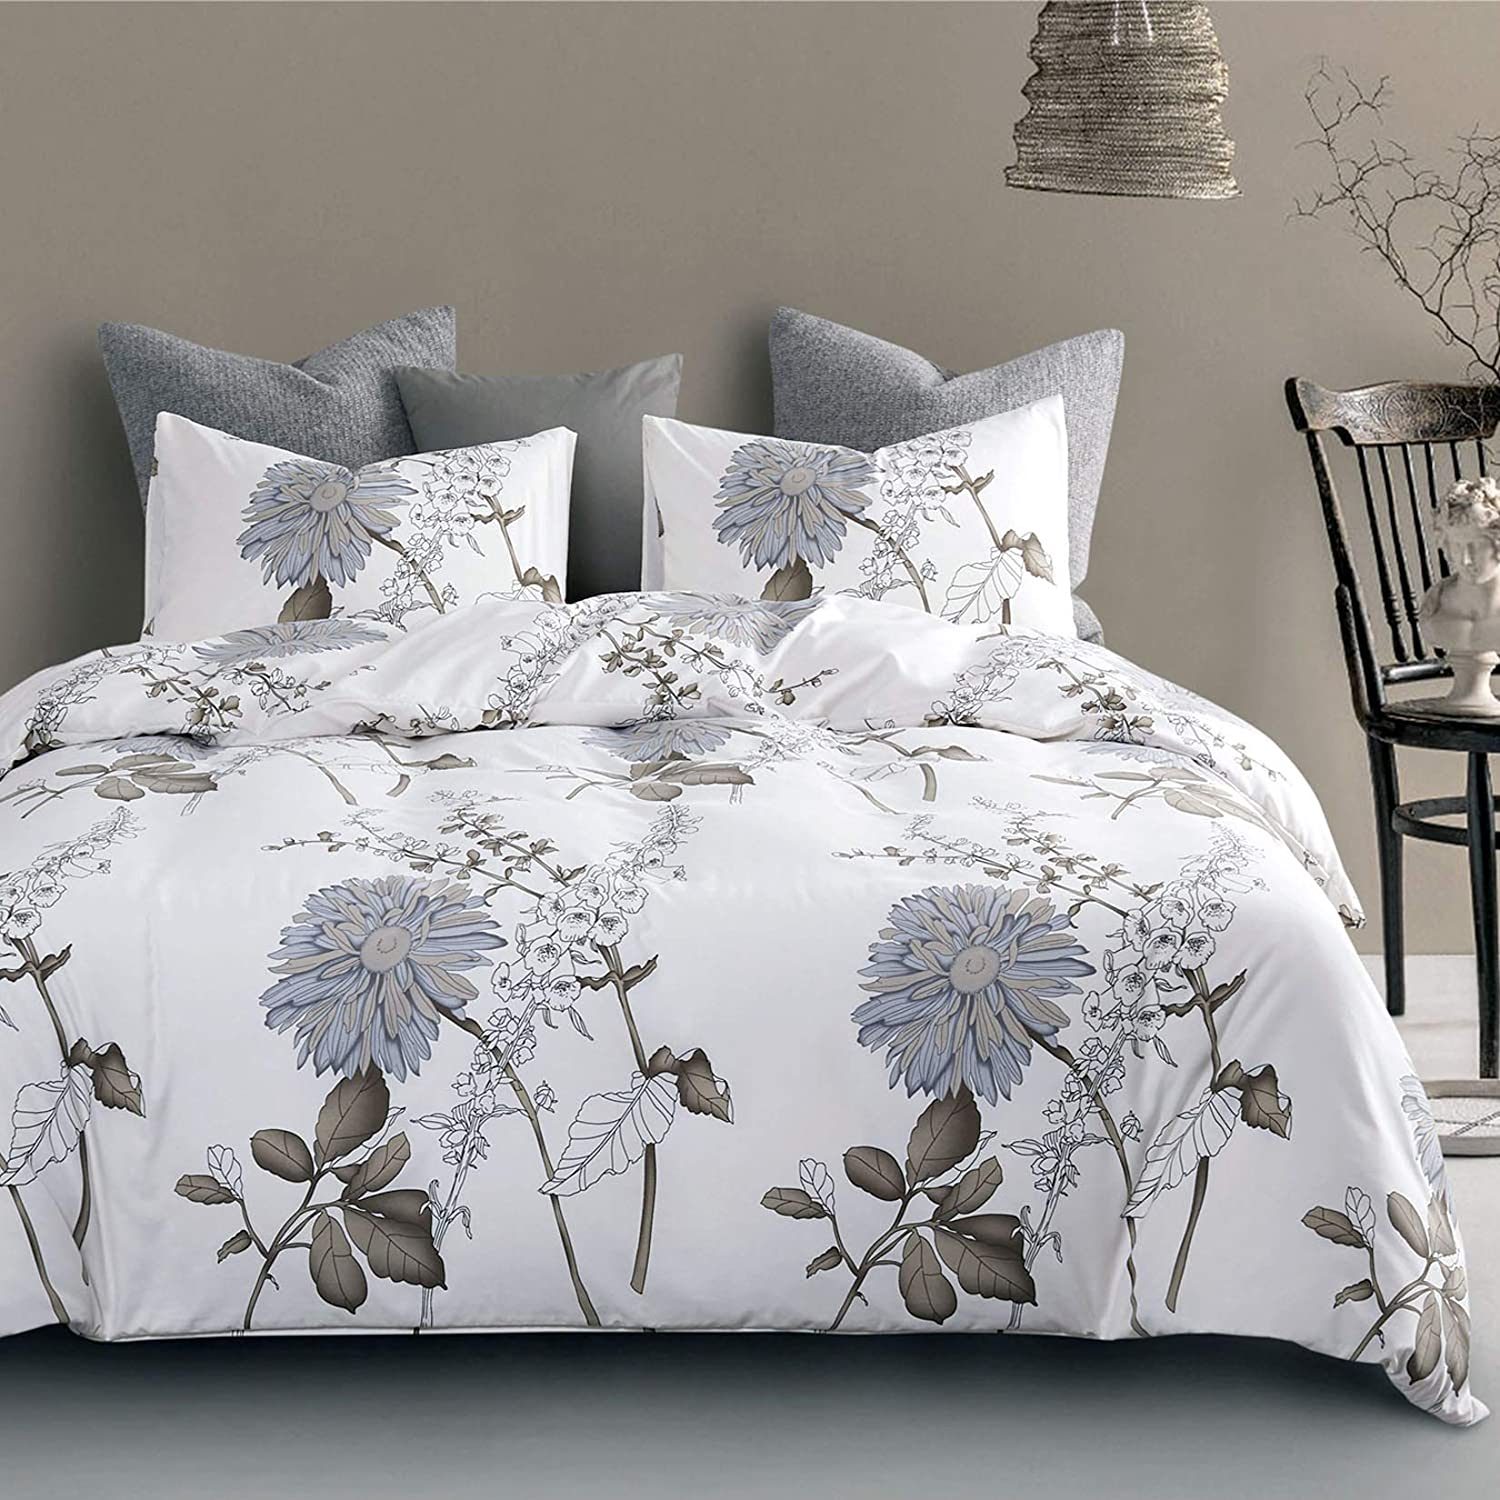 Wake In Cloud - Floral Comforter Set, Botanical Flowers Pattern Printed, Soft Microfiber Bedding